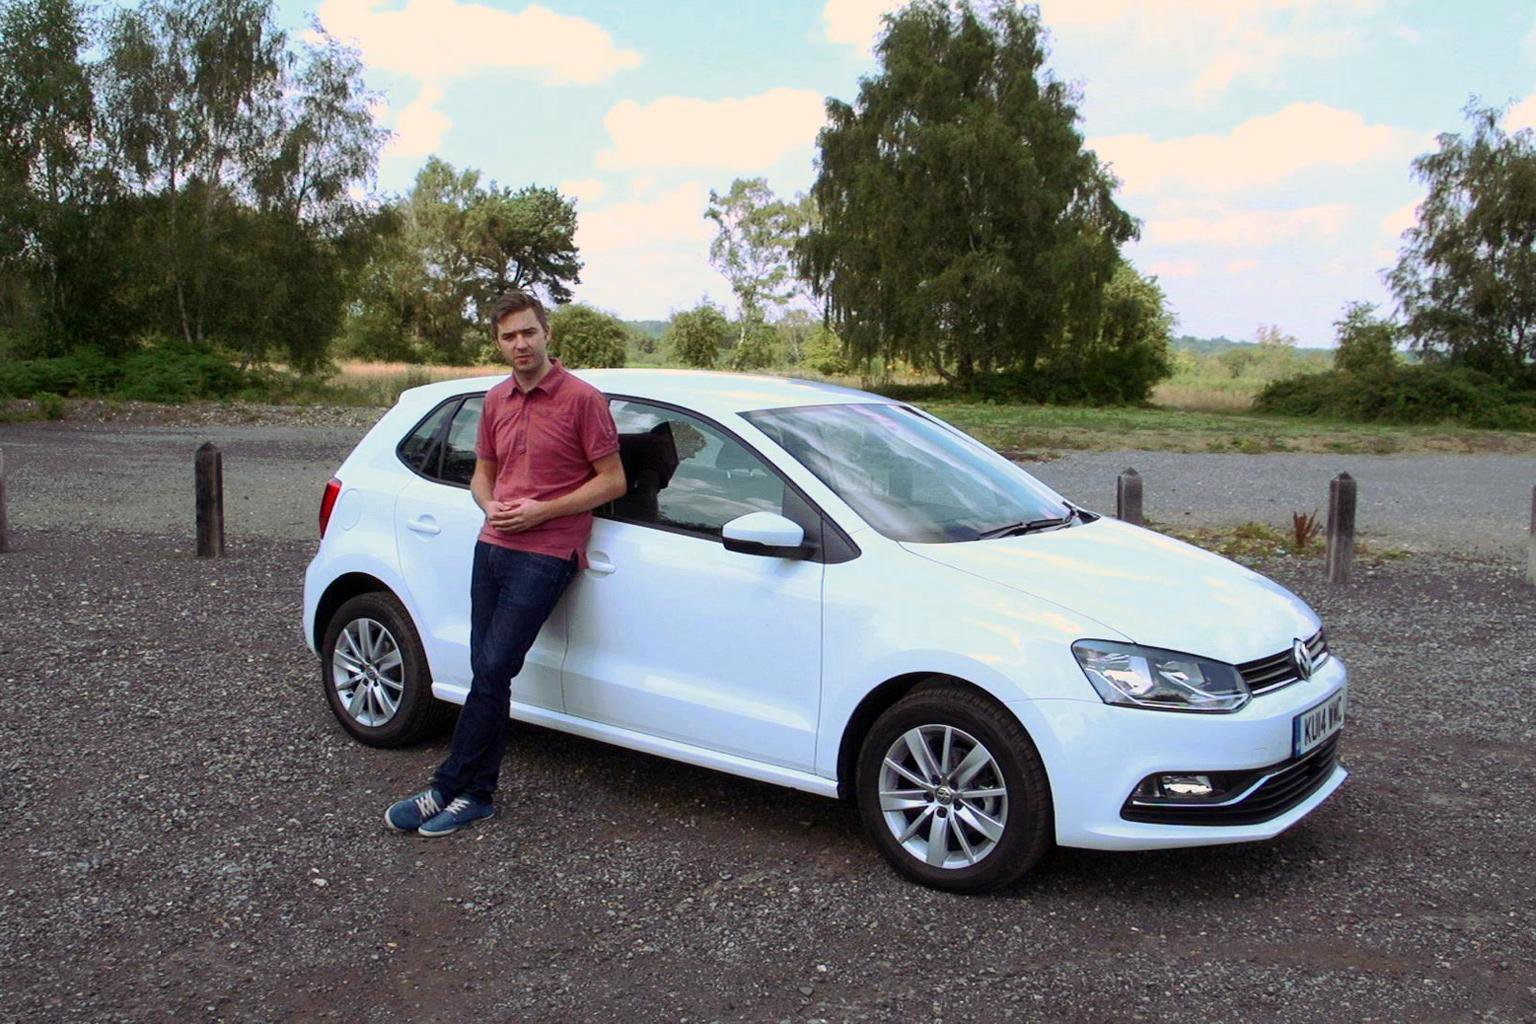 Video: Volkswagen Polo review